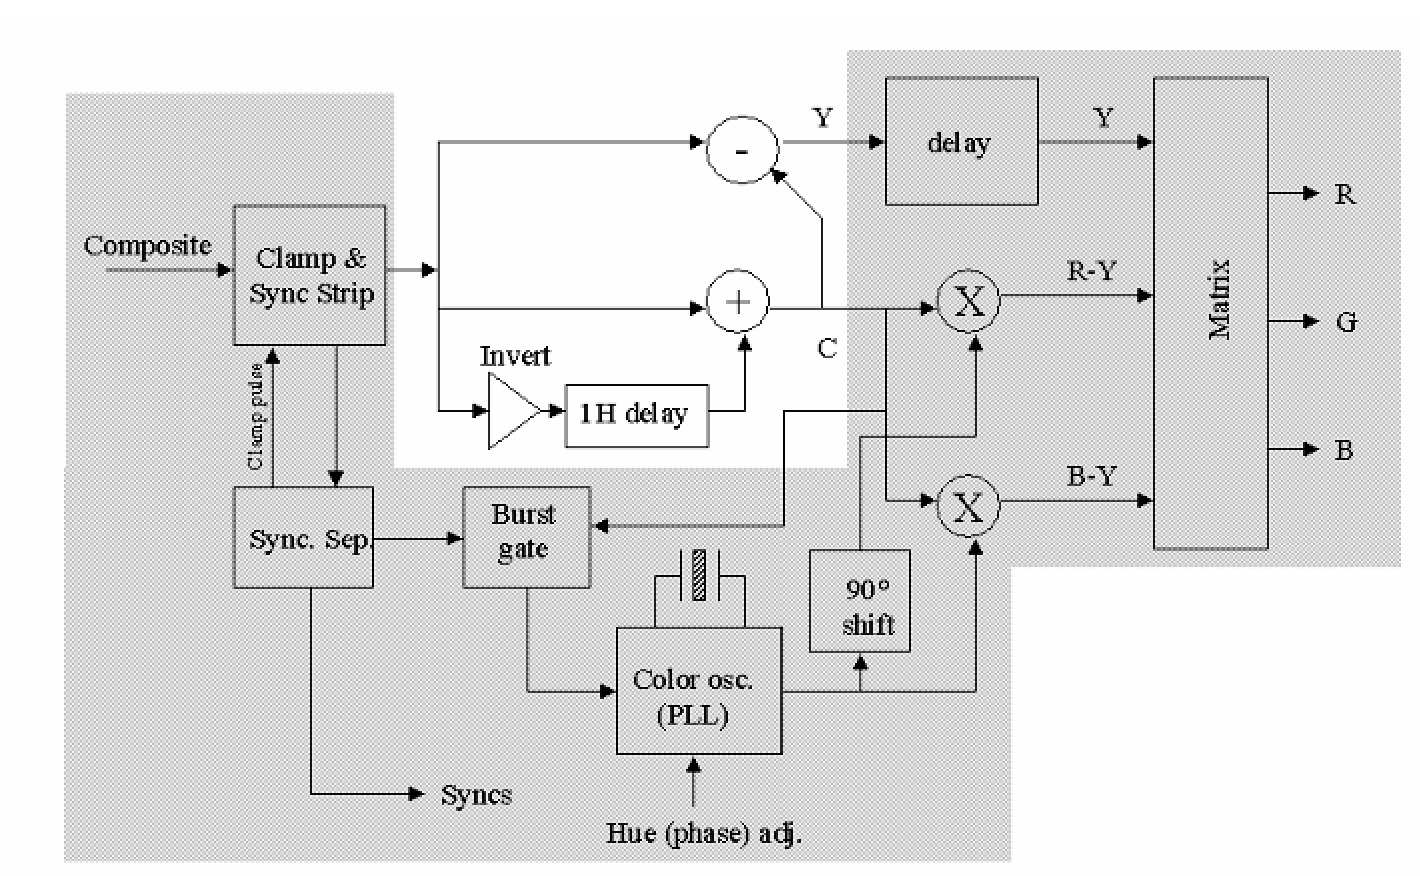 standards for analog video part i television (display interfaces  block diagram of a color television decoder for the ntsc color system the ntsc decoder with a simple comb filter (outside the shaded area) this